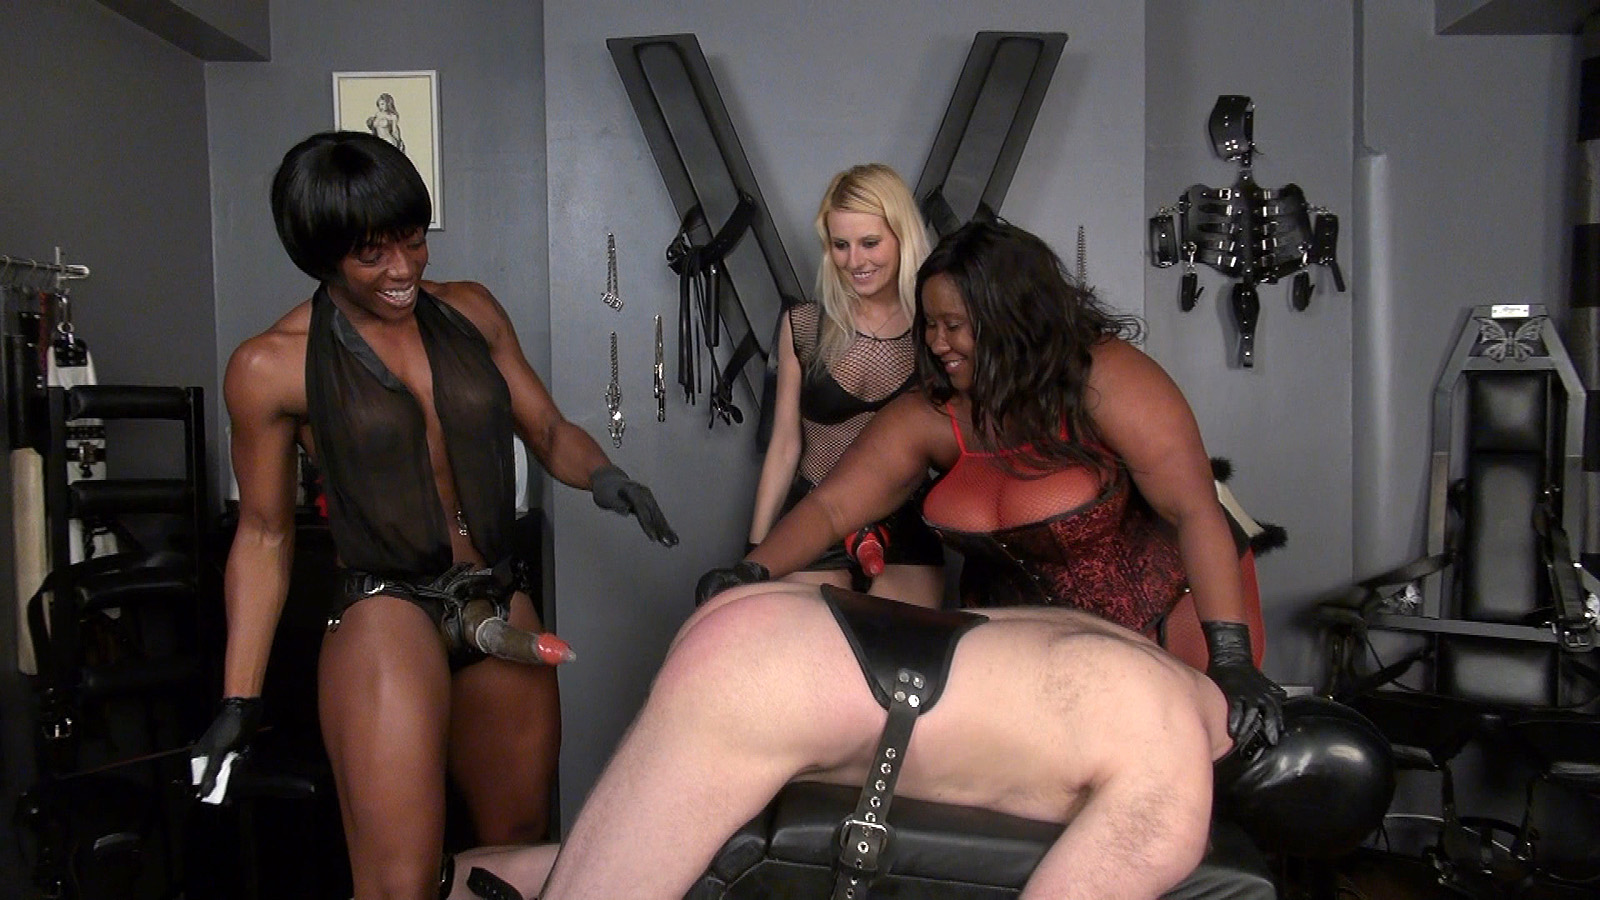 female-domination-lessons-banner-ad-video-slow-motion-tits